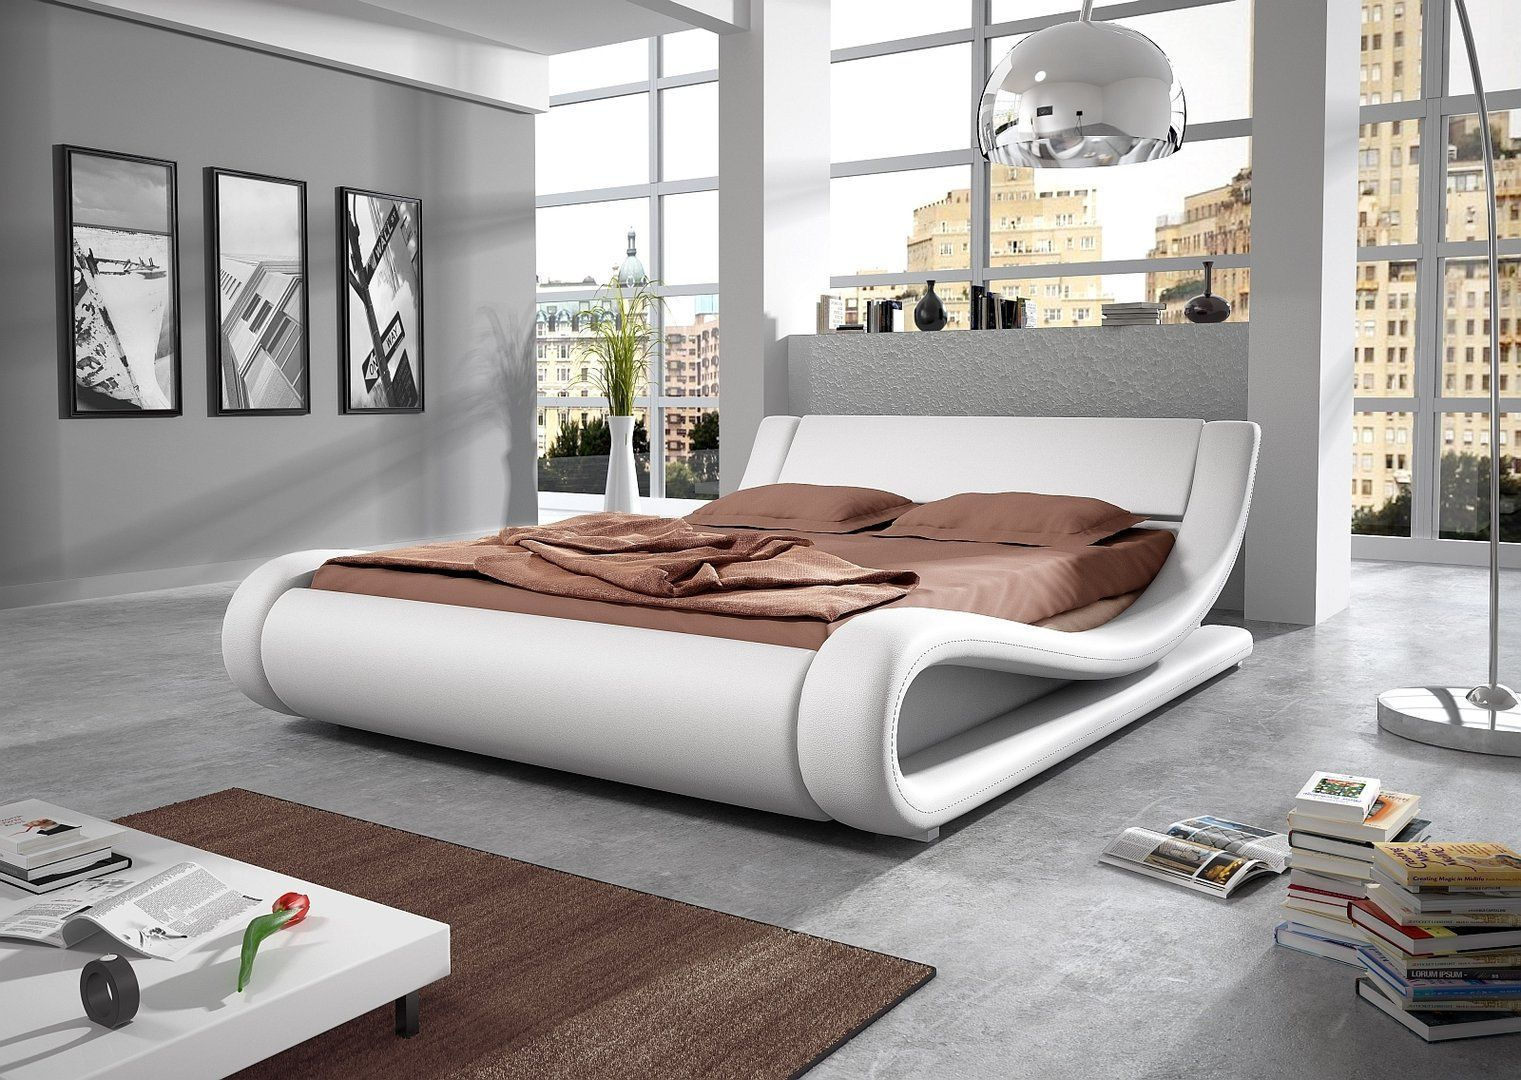 Discover The Best Home Decor Ideas To Style Your Room Design